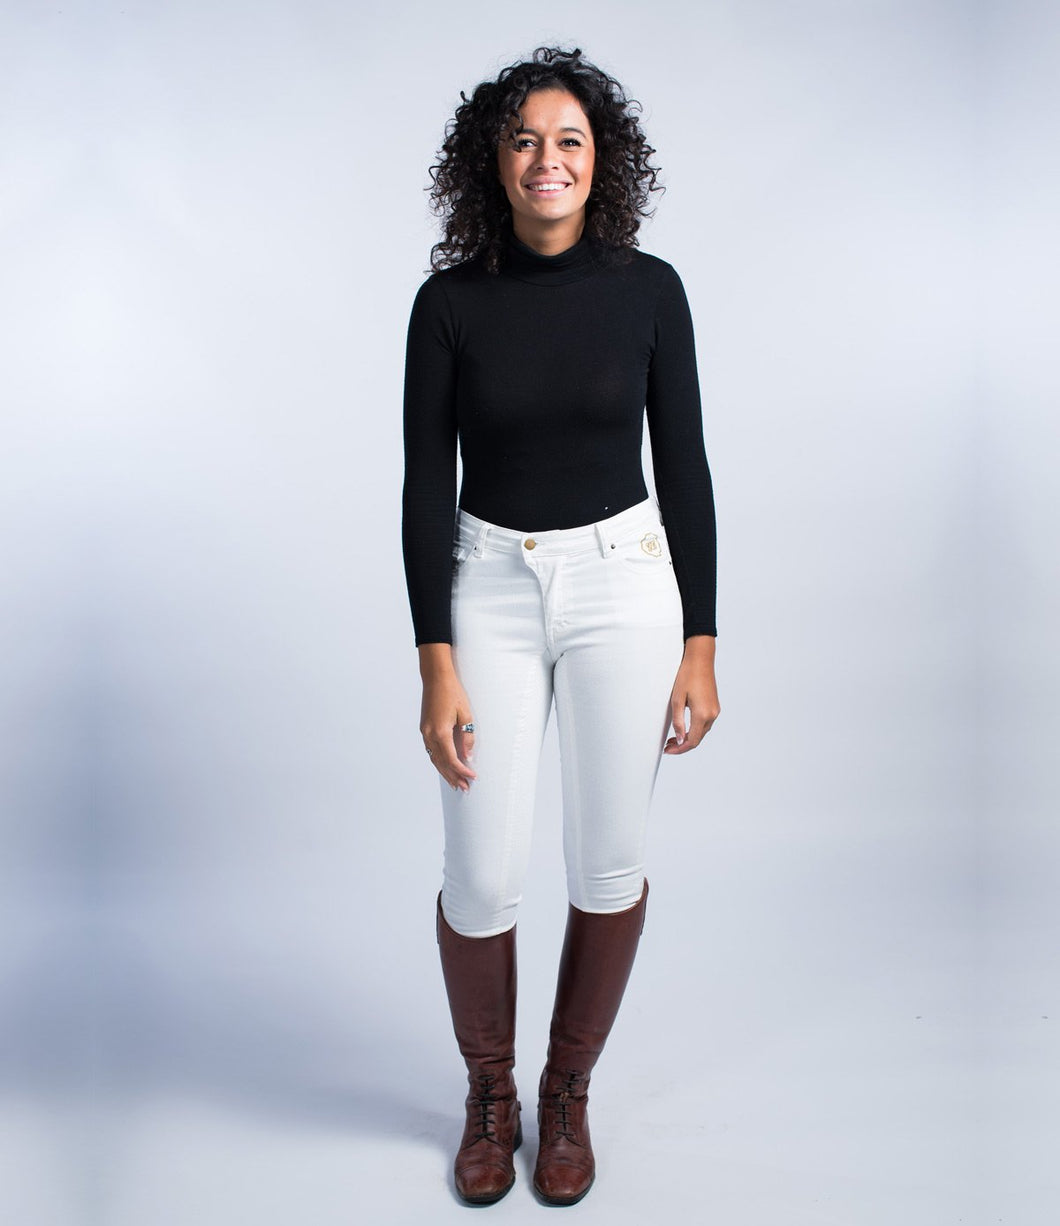 Regalita Equestrian Jeans | Georgian Dollar | White Denim Breeches